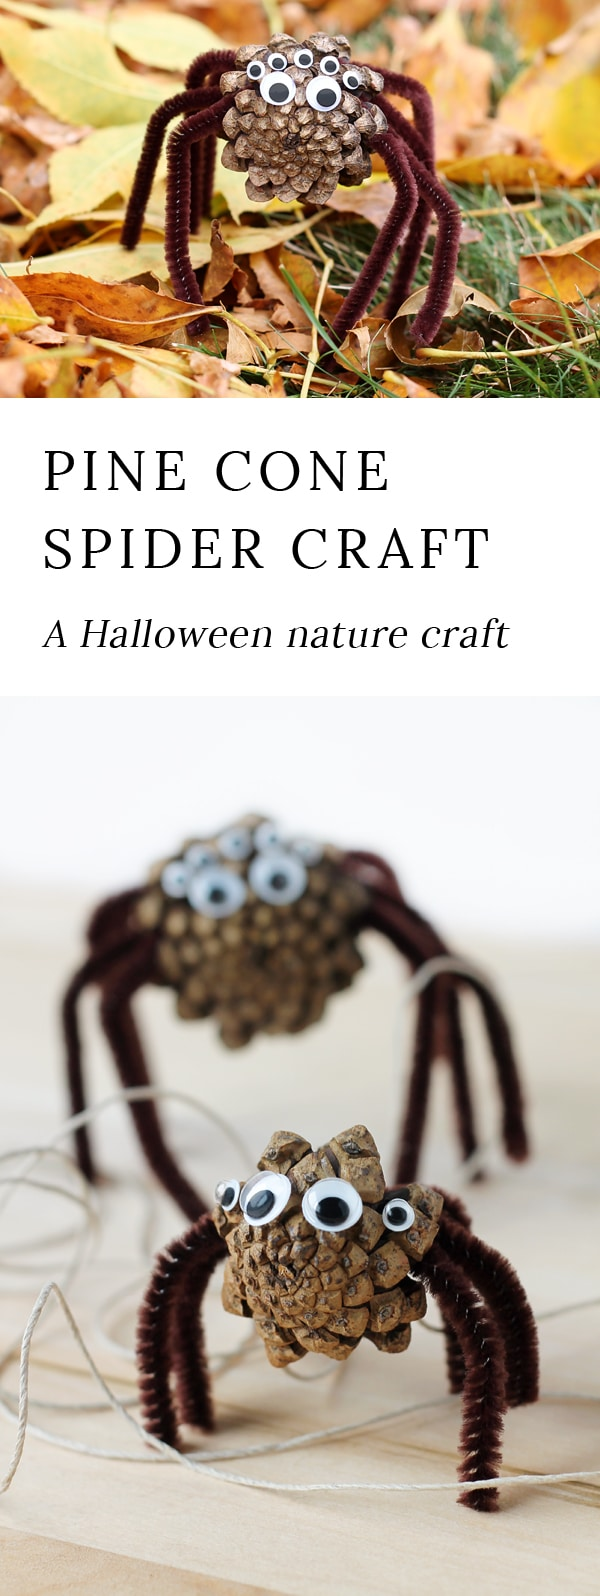 Kids of all ages will enjoy collecting pine cones to create Pine Cone Spiders for Halloween. Thiscreepy-cute nature craft is perfect for home, school, community programs, and camp. #pineconespiders #naturecraft via @firefliesandmudpies